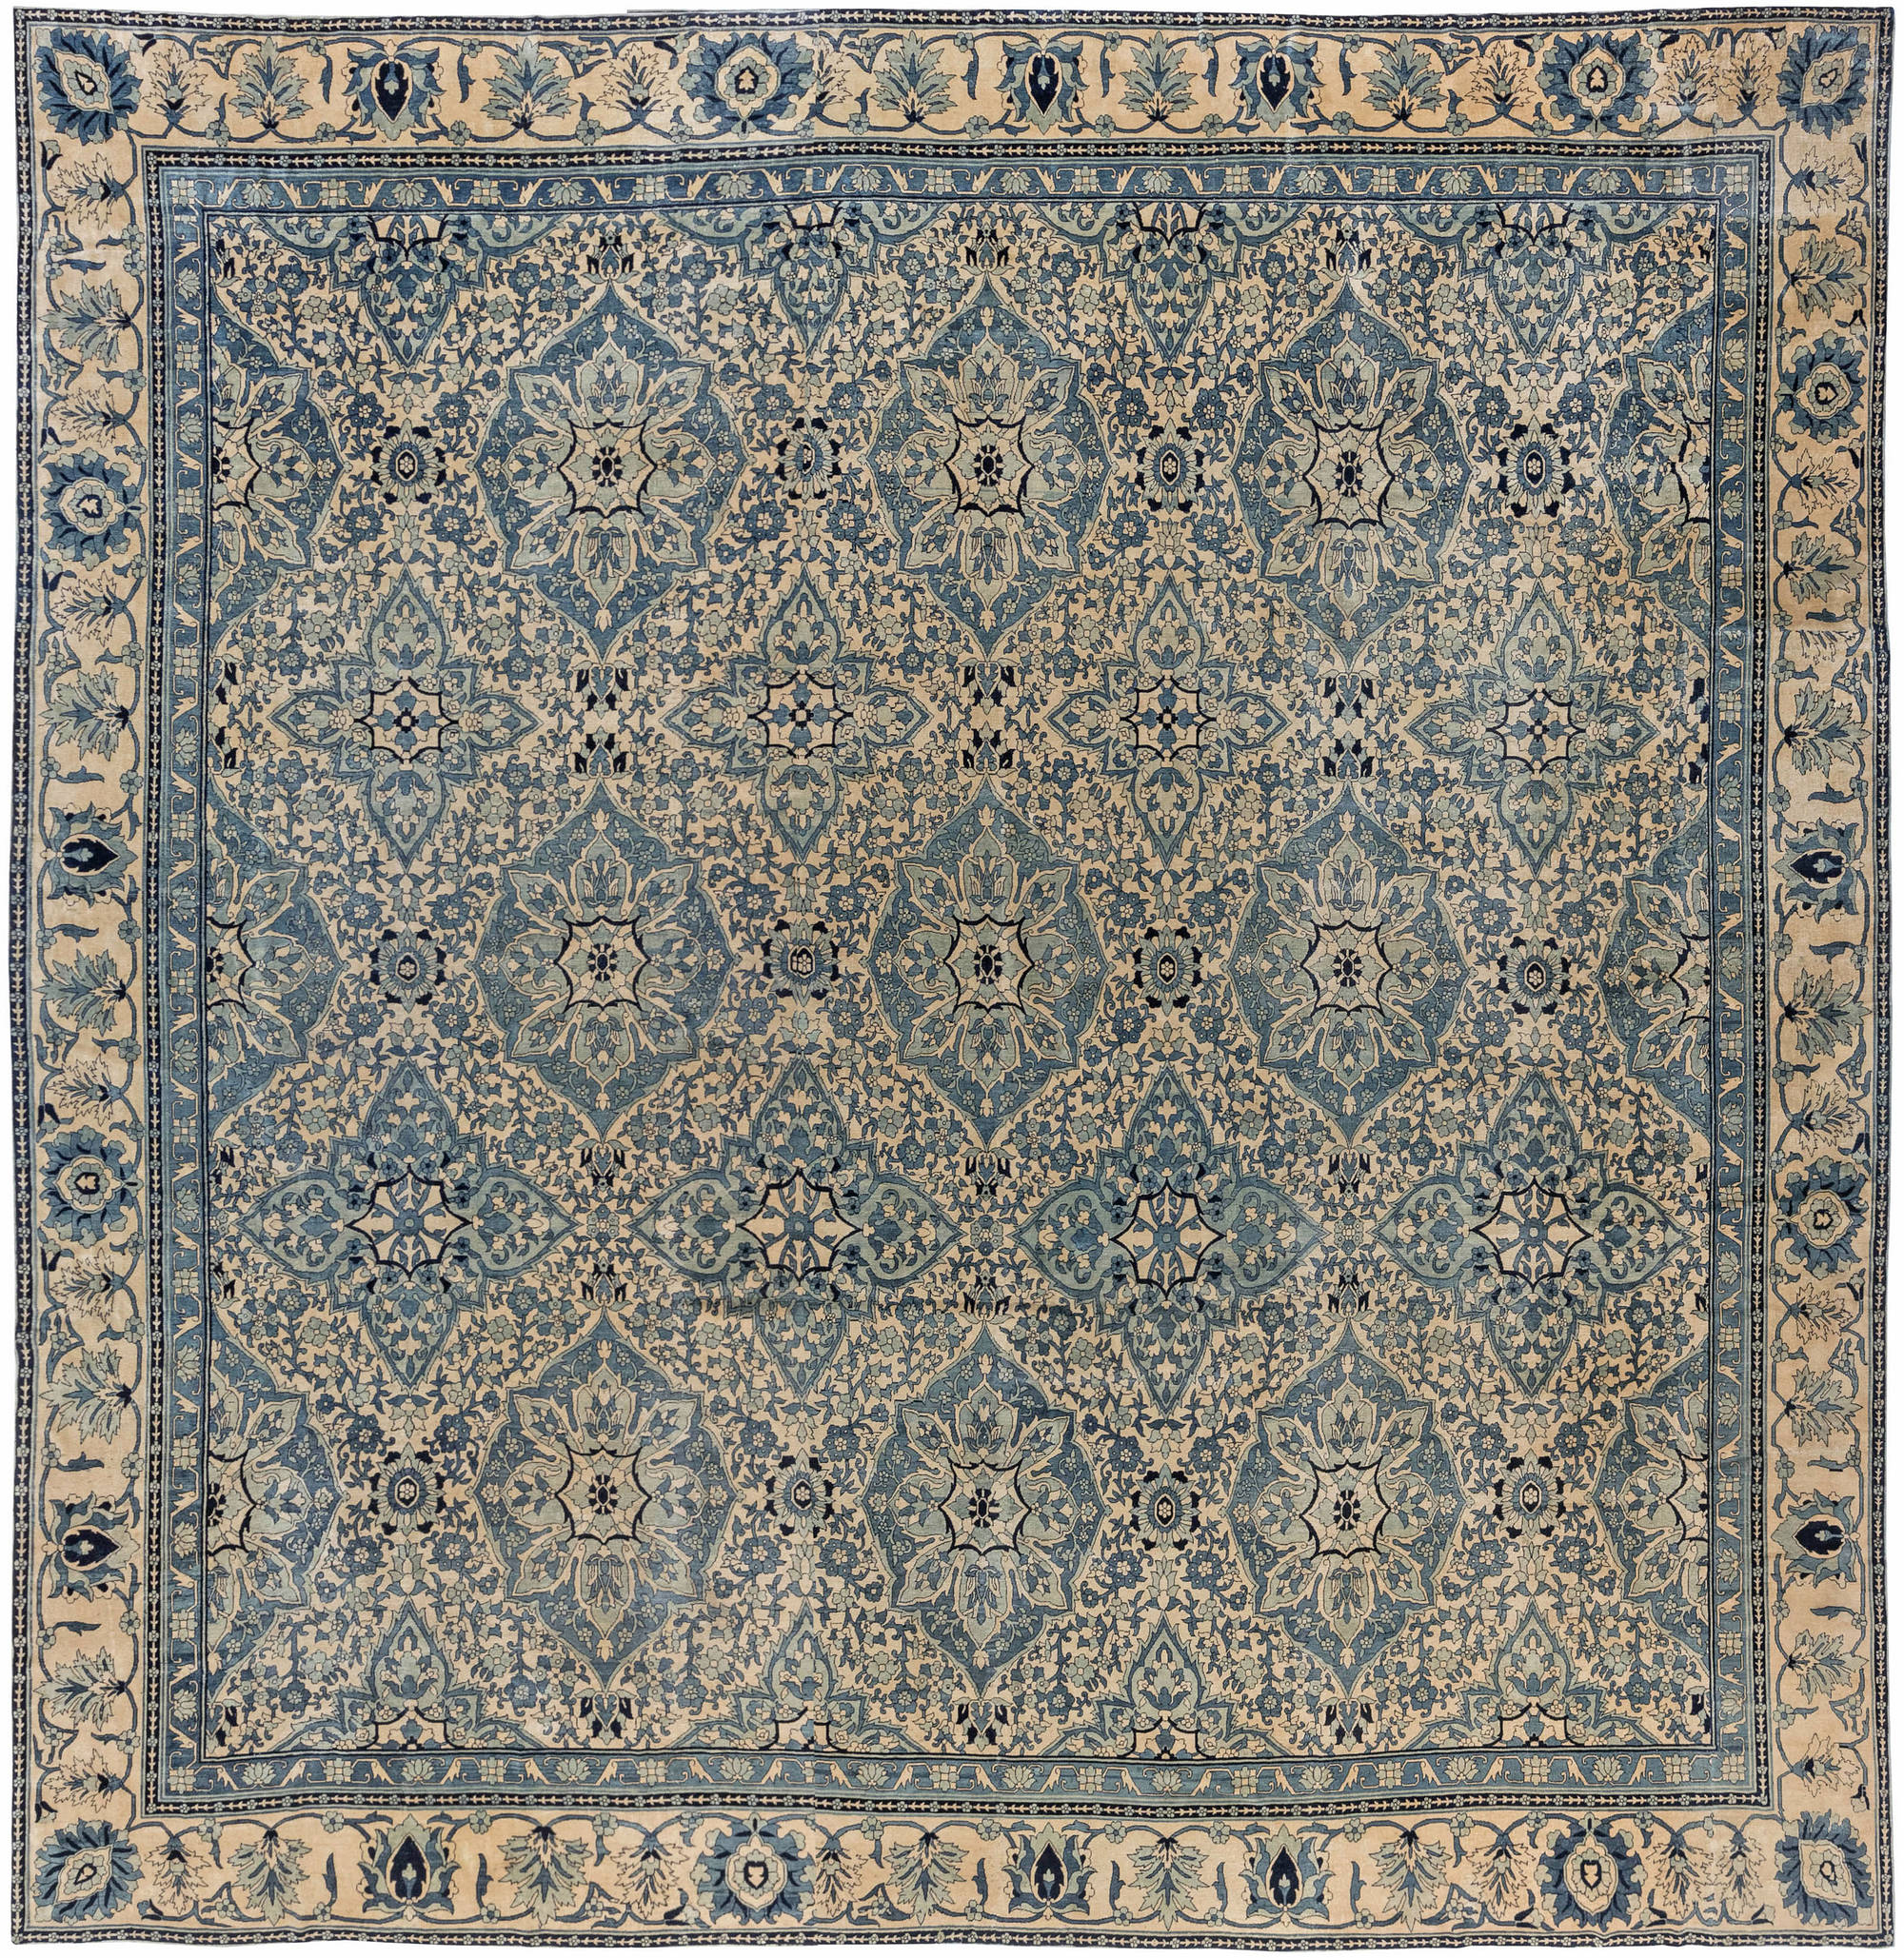 Oversized Antique Indian Rug BB5360